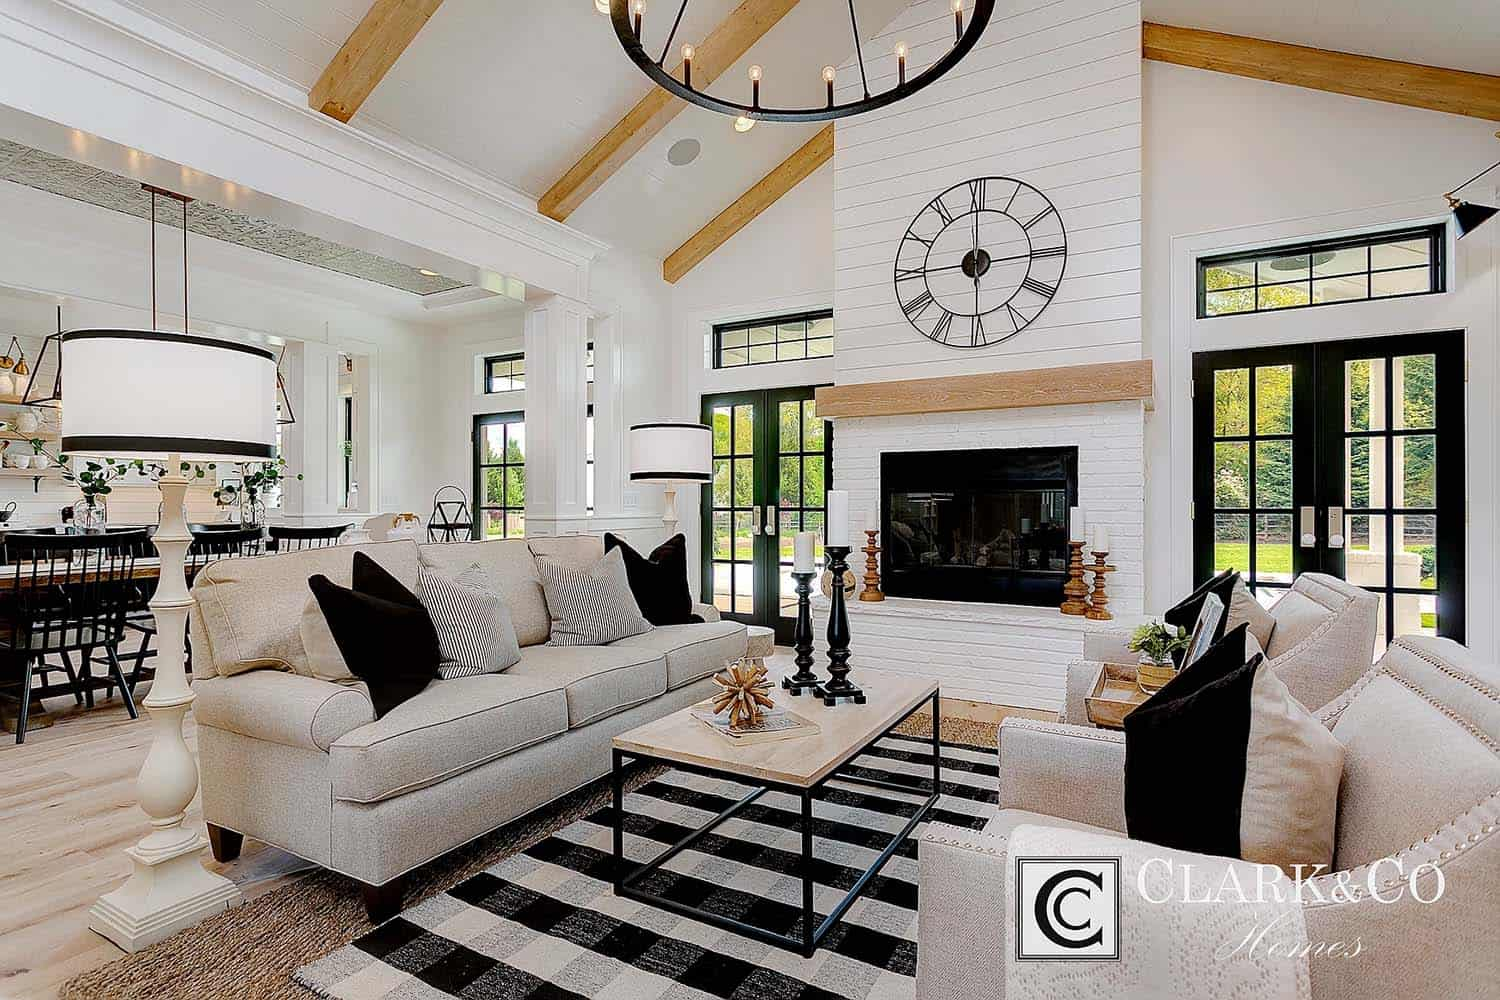 Modern Farmhouse Style-Clark and Co Homes-05-1 Kindesign